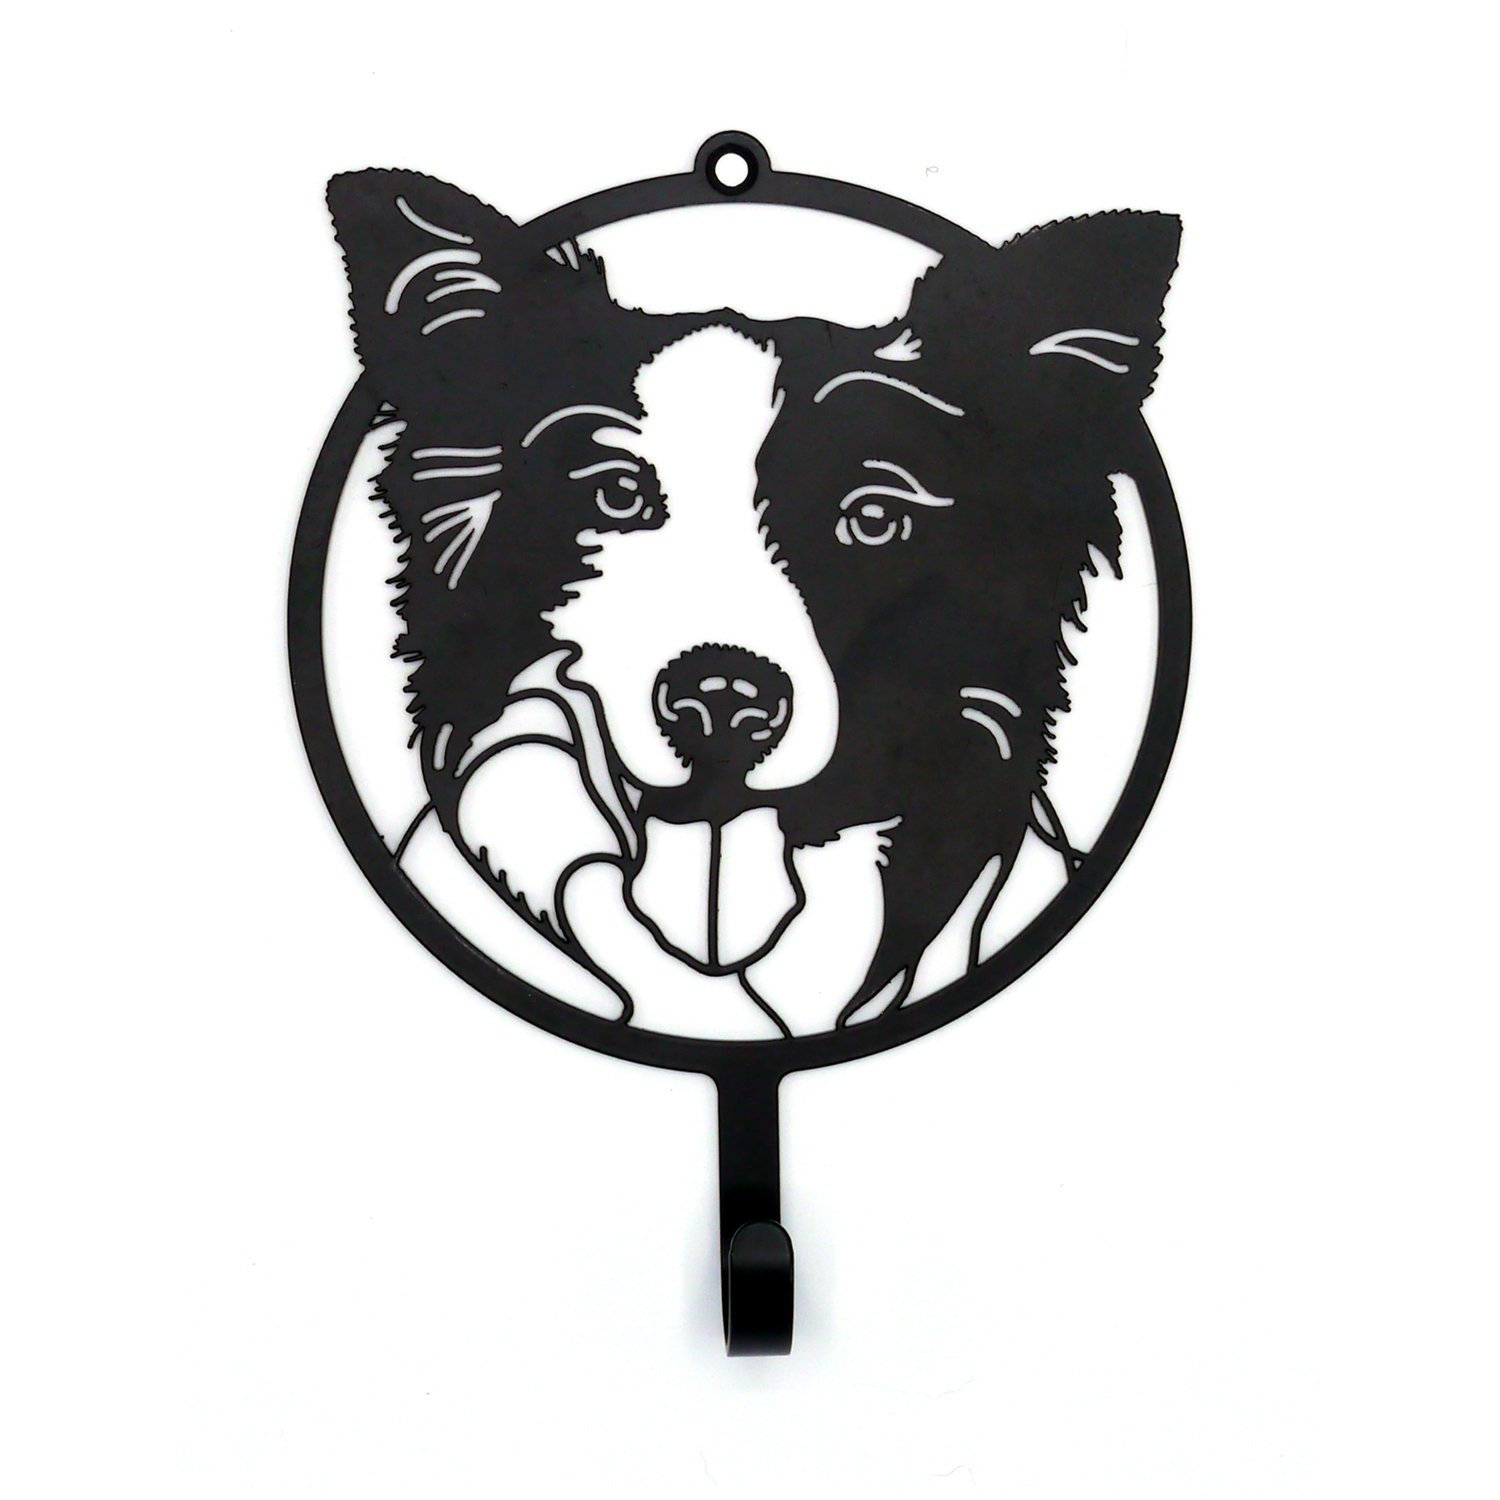 1500x1500 Border Collie Dog Leash Hanger Or Key Hook Made From Carbon Etsy